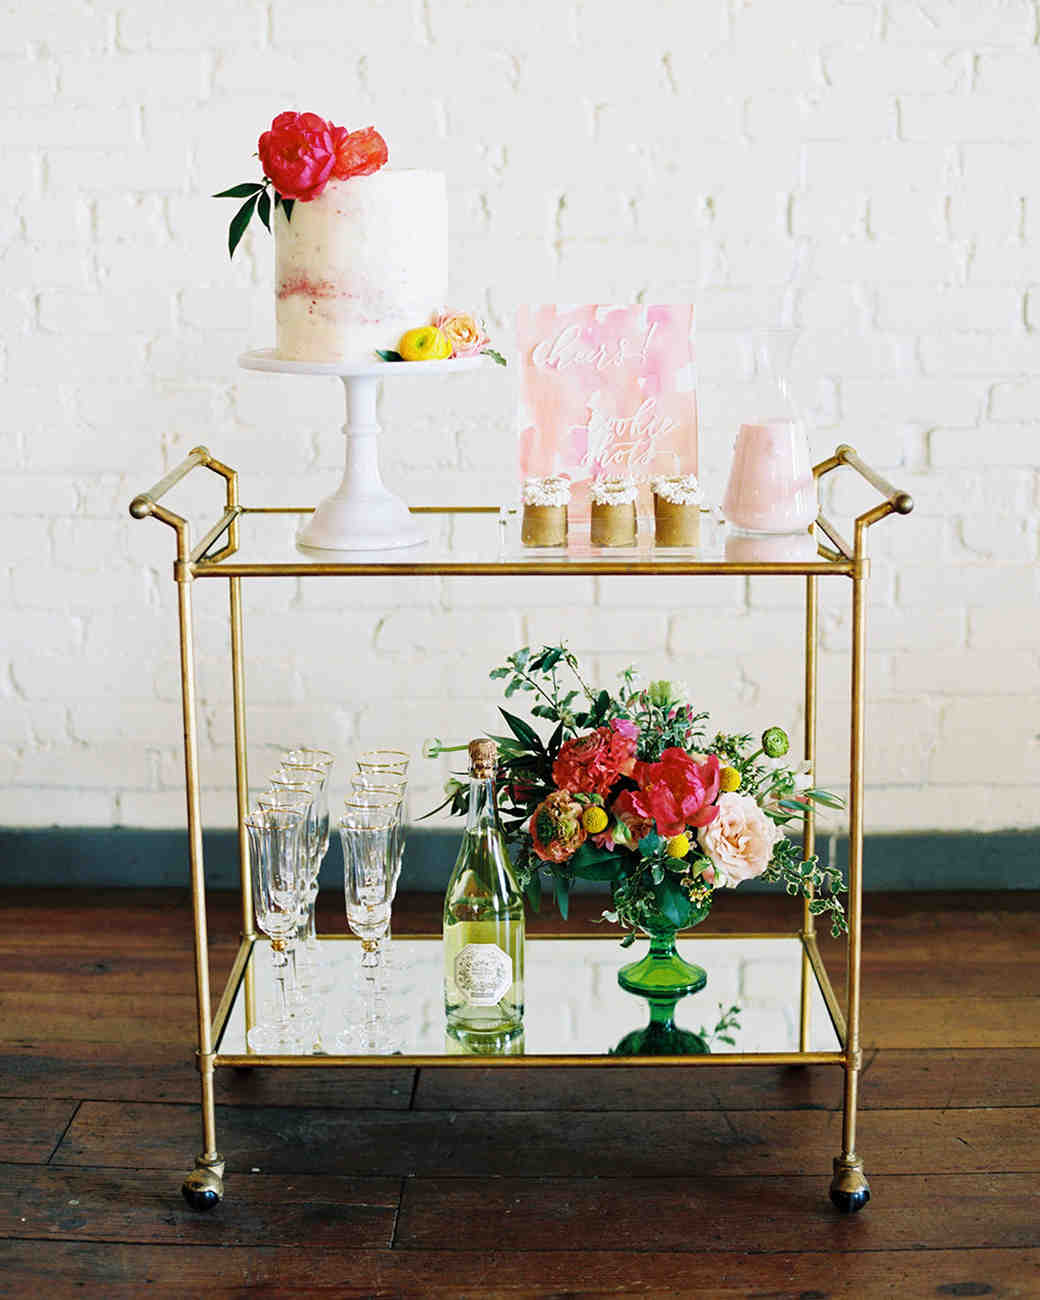 wedding bar cart featuring desserts